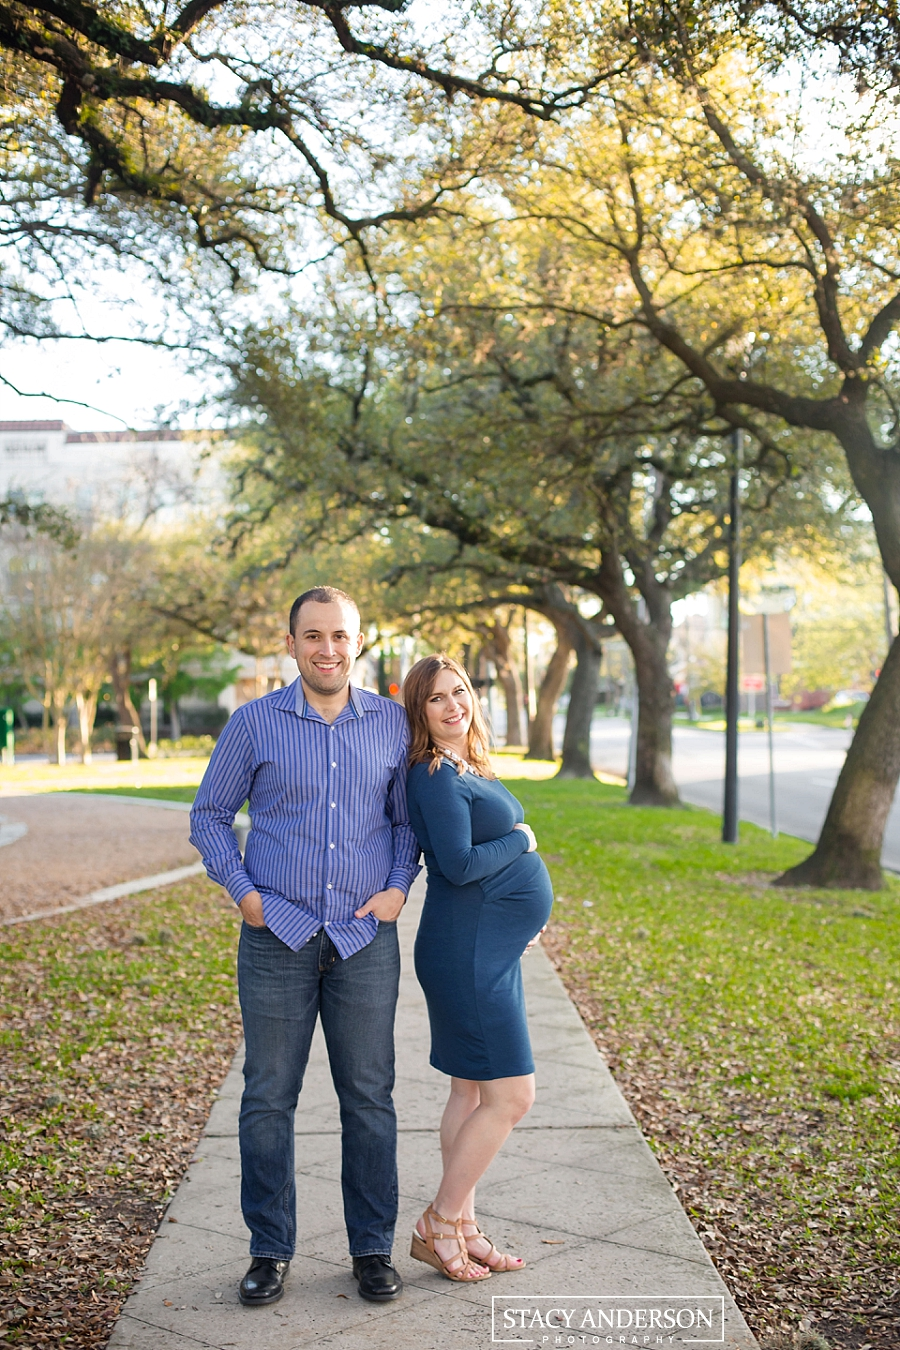 Stacy Anderson Photography Houston Maternity Photographer_1188